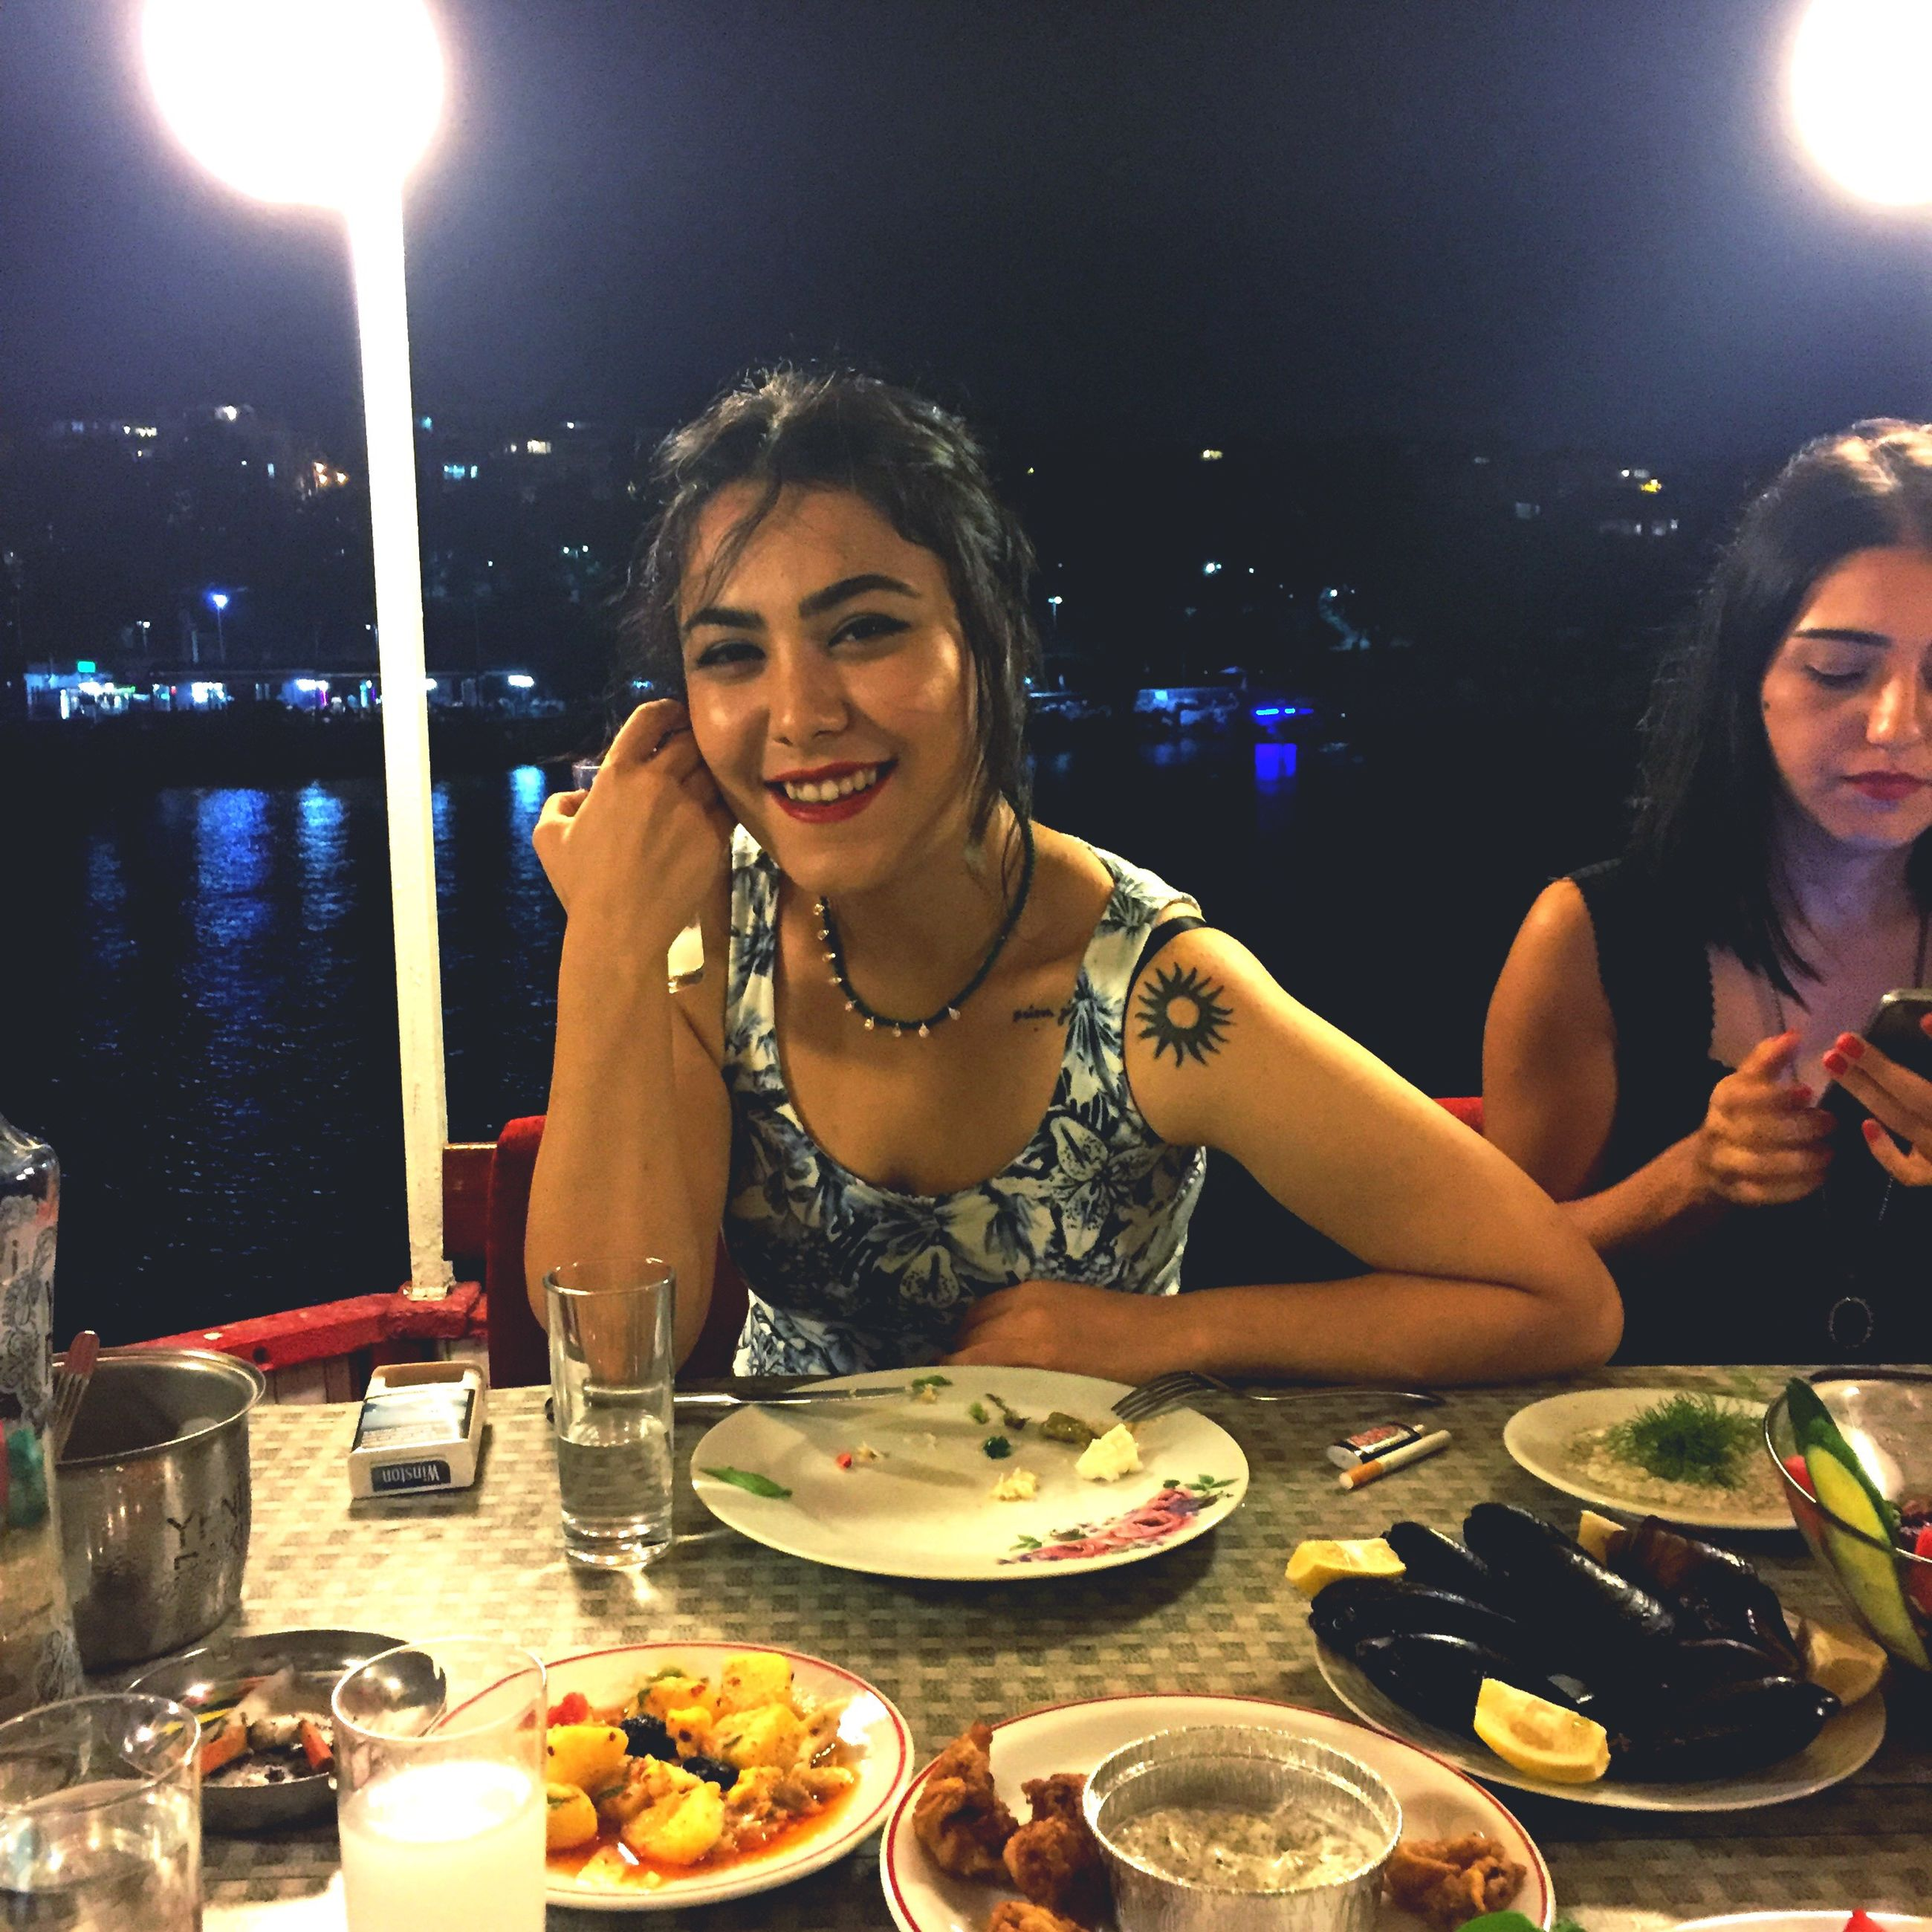 illuminated, food and drink, night, togetherness, birthday cake, headshot, celebration, lifestyles, food, birthday, leisure activity, eating, front view, in front of, young women, freshness, plate, enjoyment, water, dinner, ready-to-eat, indulgence, young adult, person, dessert